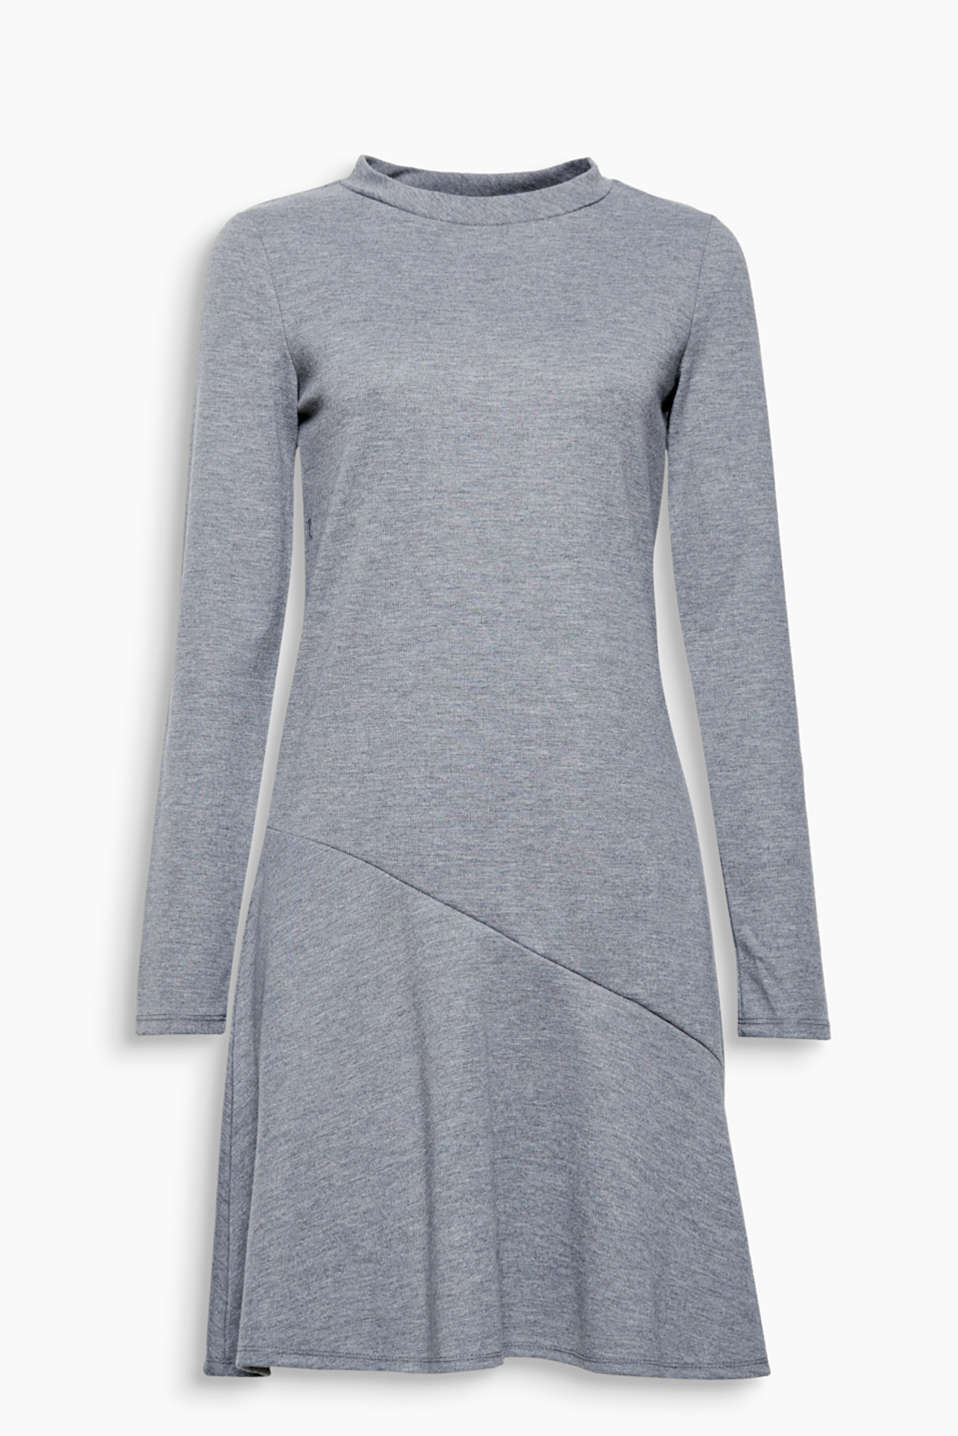 So easy and versatile: heavy jersey dress with a stand-up collar and flounce hem